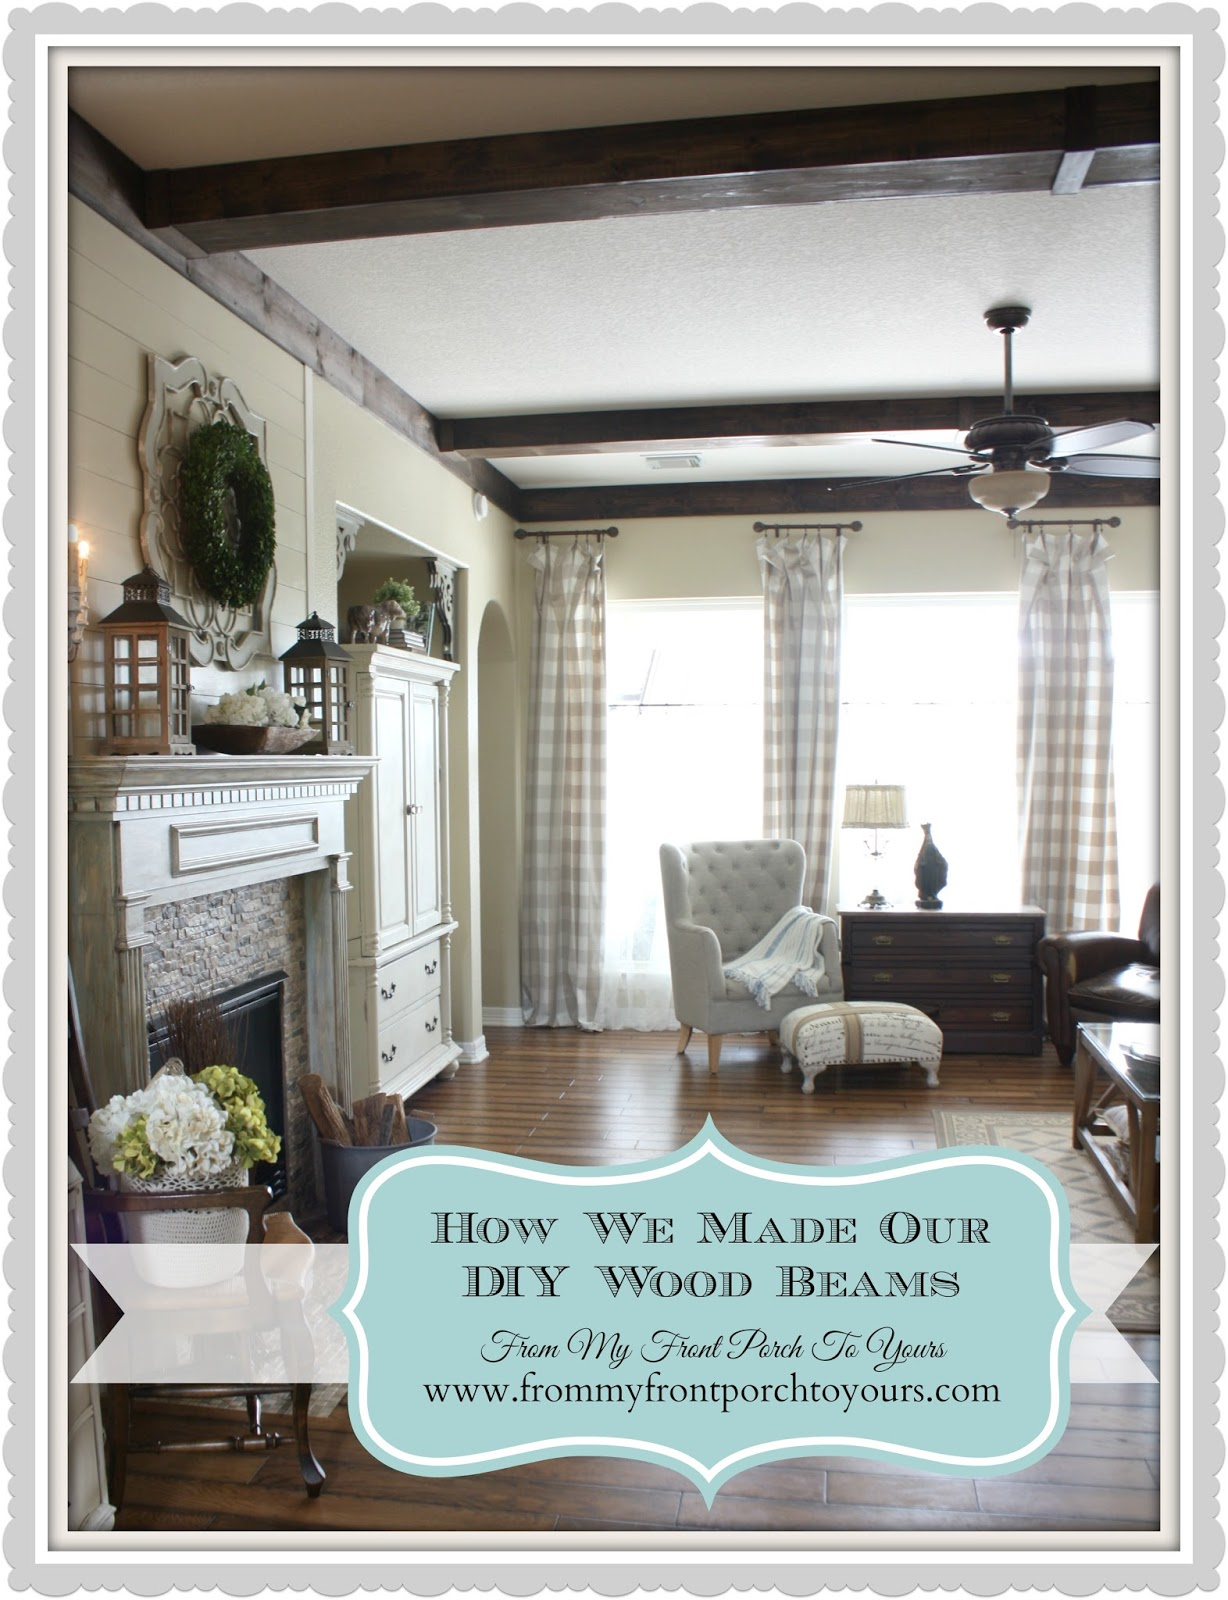 How we created wood beams for our french farmhouse living room at From My Front Porch To Yours.